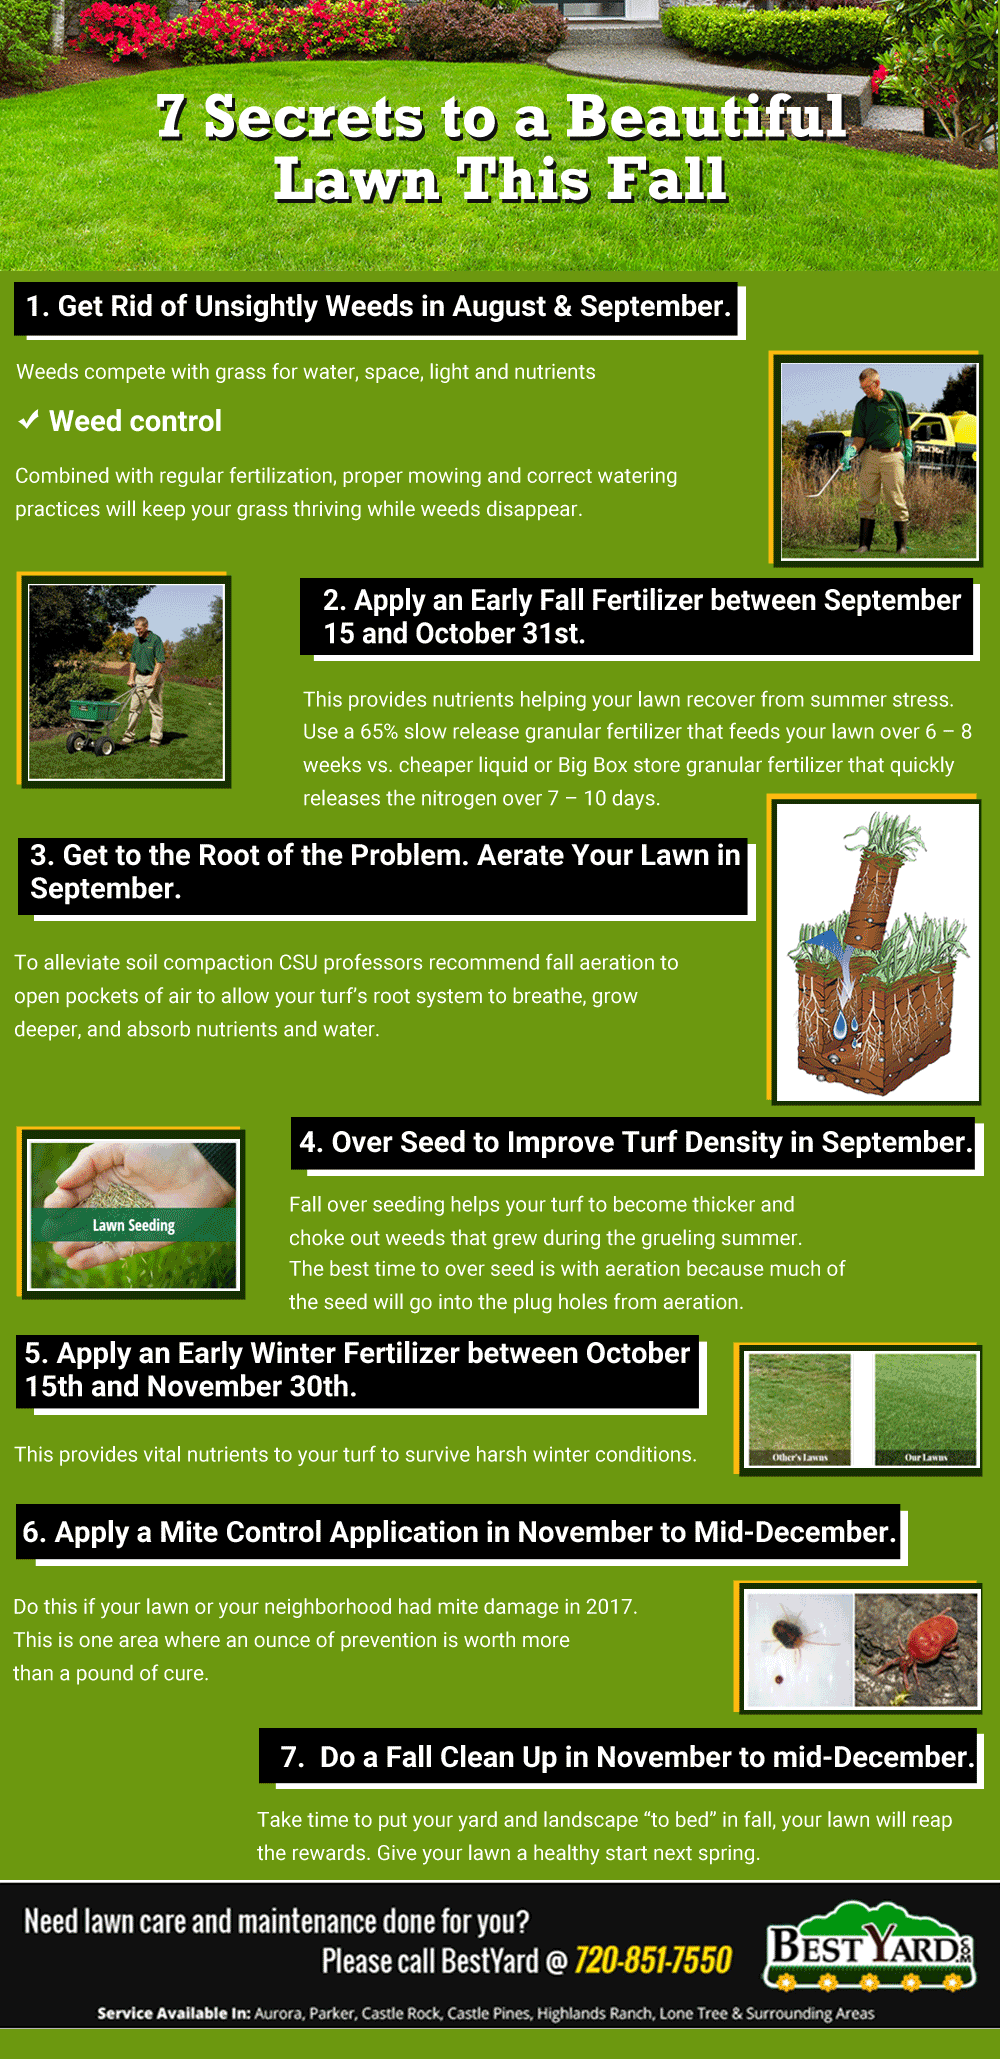 7 Secrets to a Beautiful Lawn This Fall